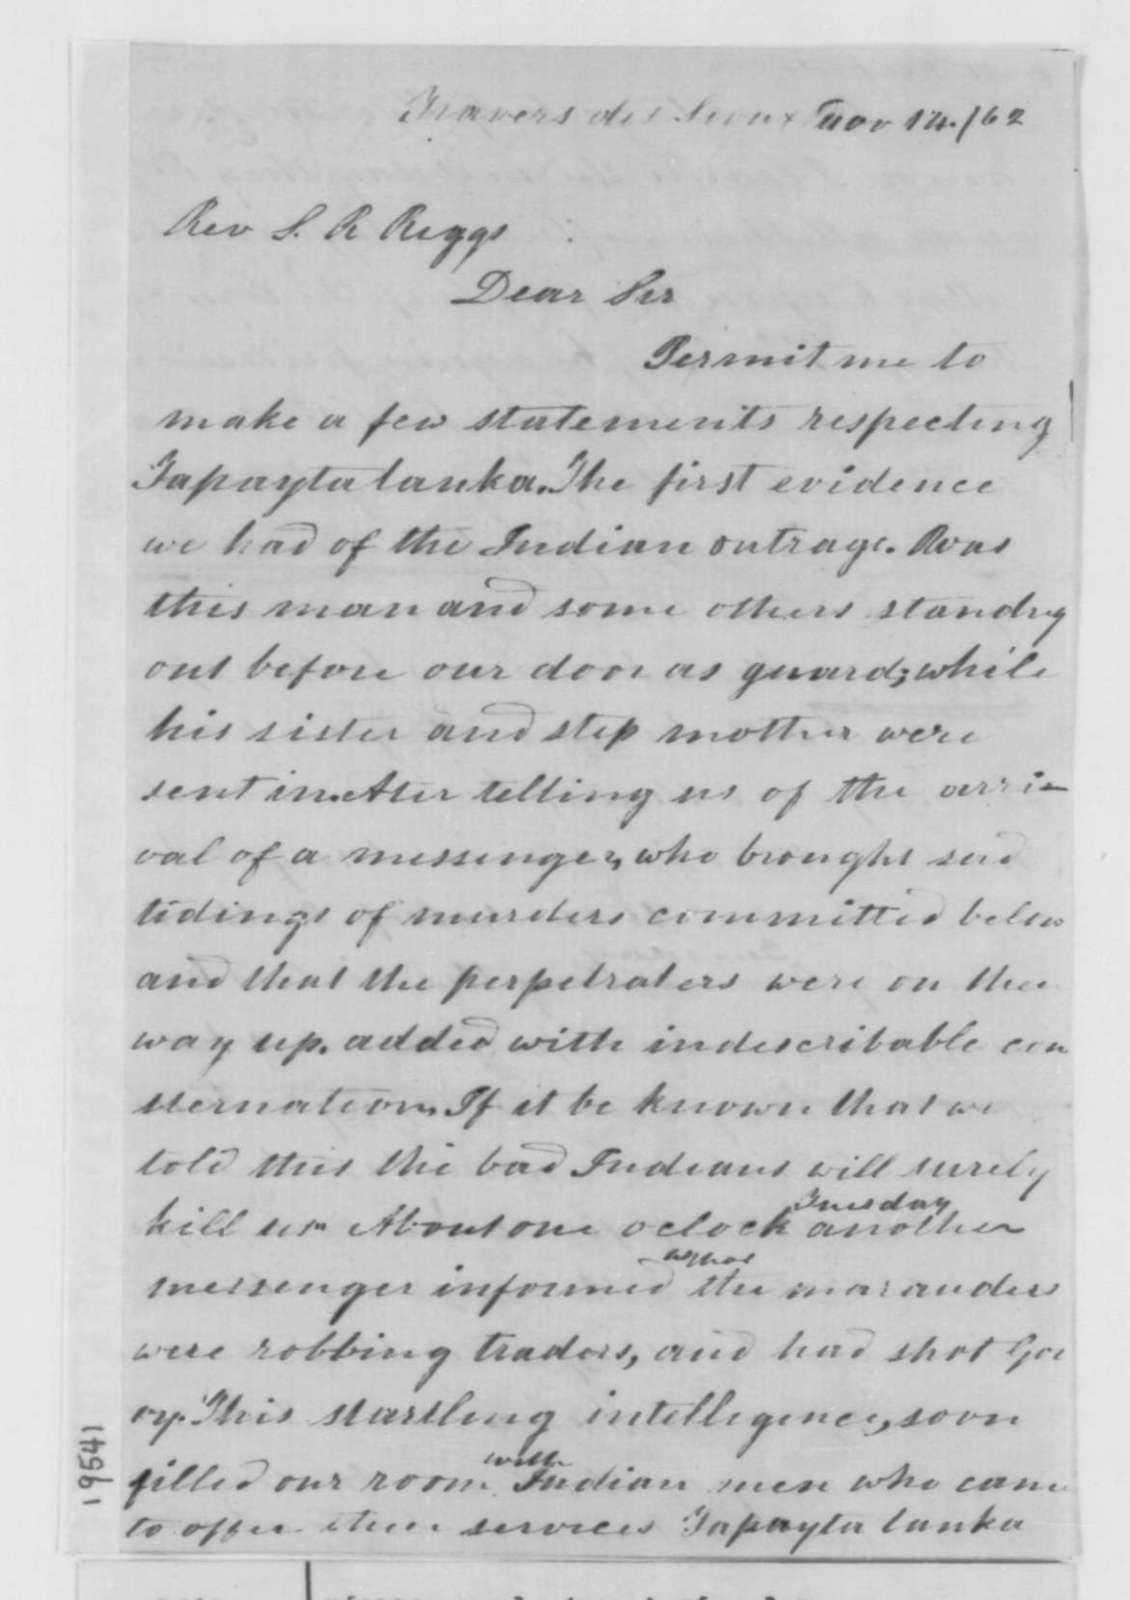 Jane L. Williamson to Stephen R. Riggs, Friday, November 14, 1862  (Sioux uprising in Minnesota)